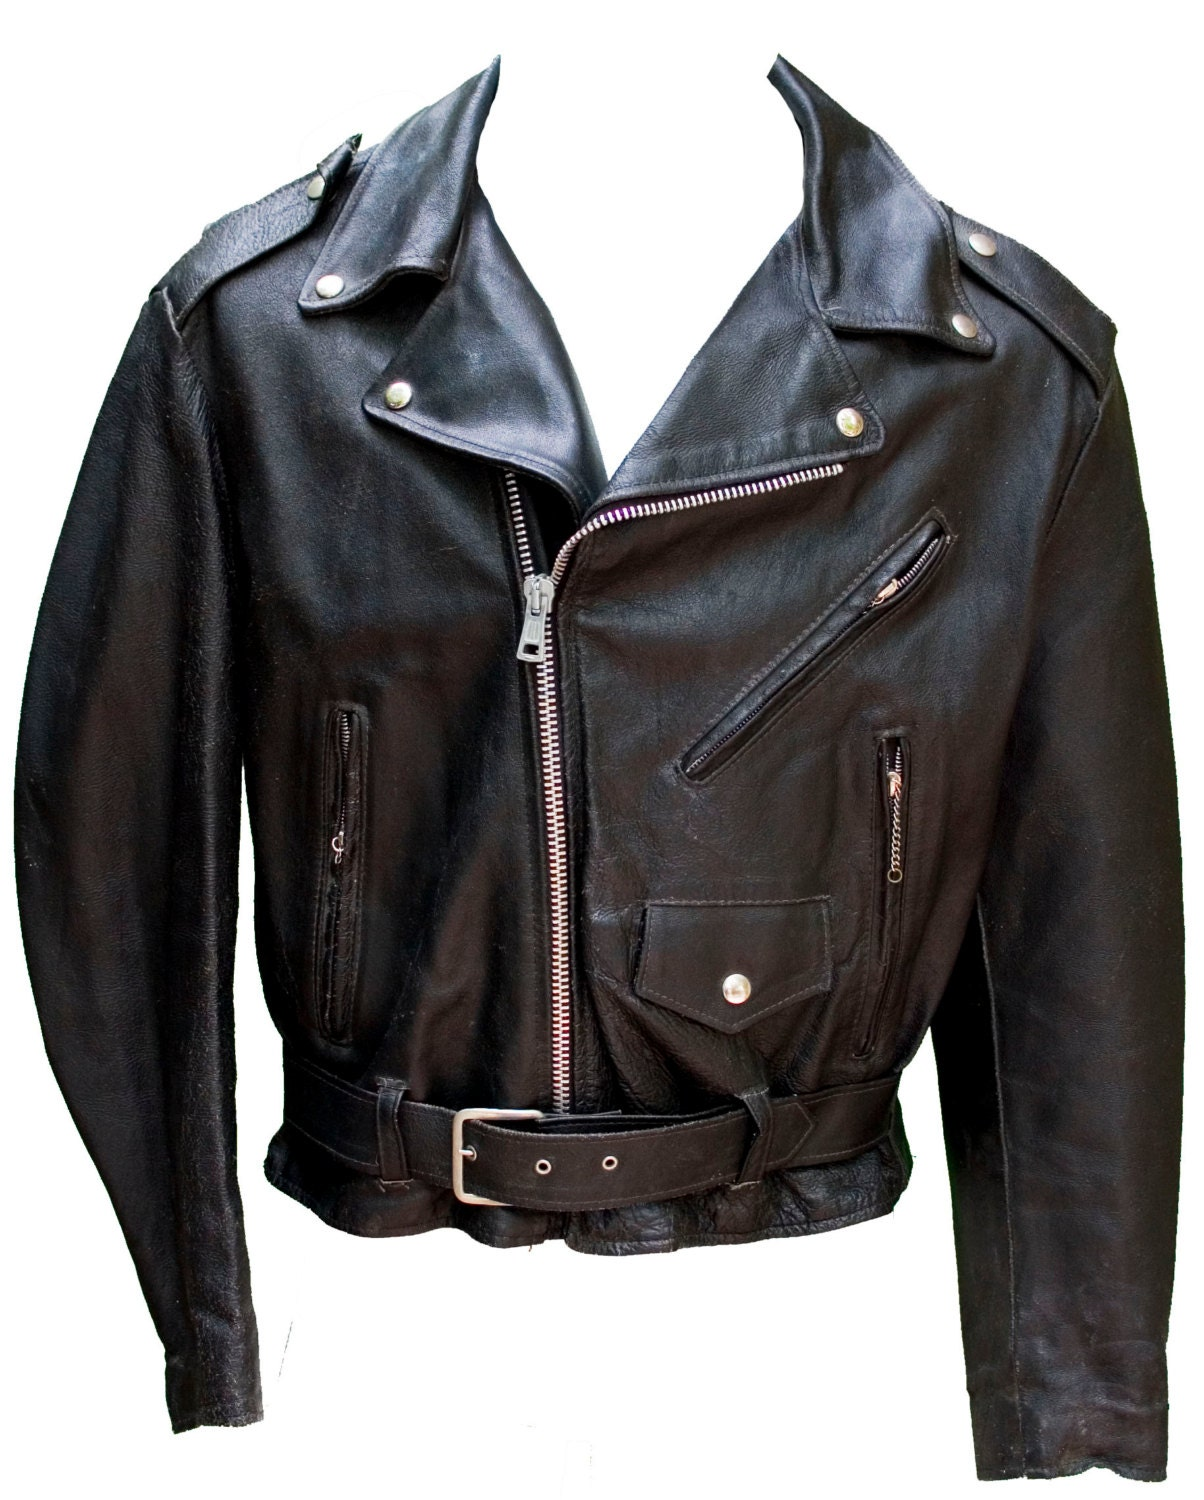 1950s Large Jacket Motorcycle Biker Leather Black Fetish Daddy